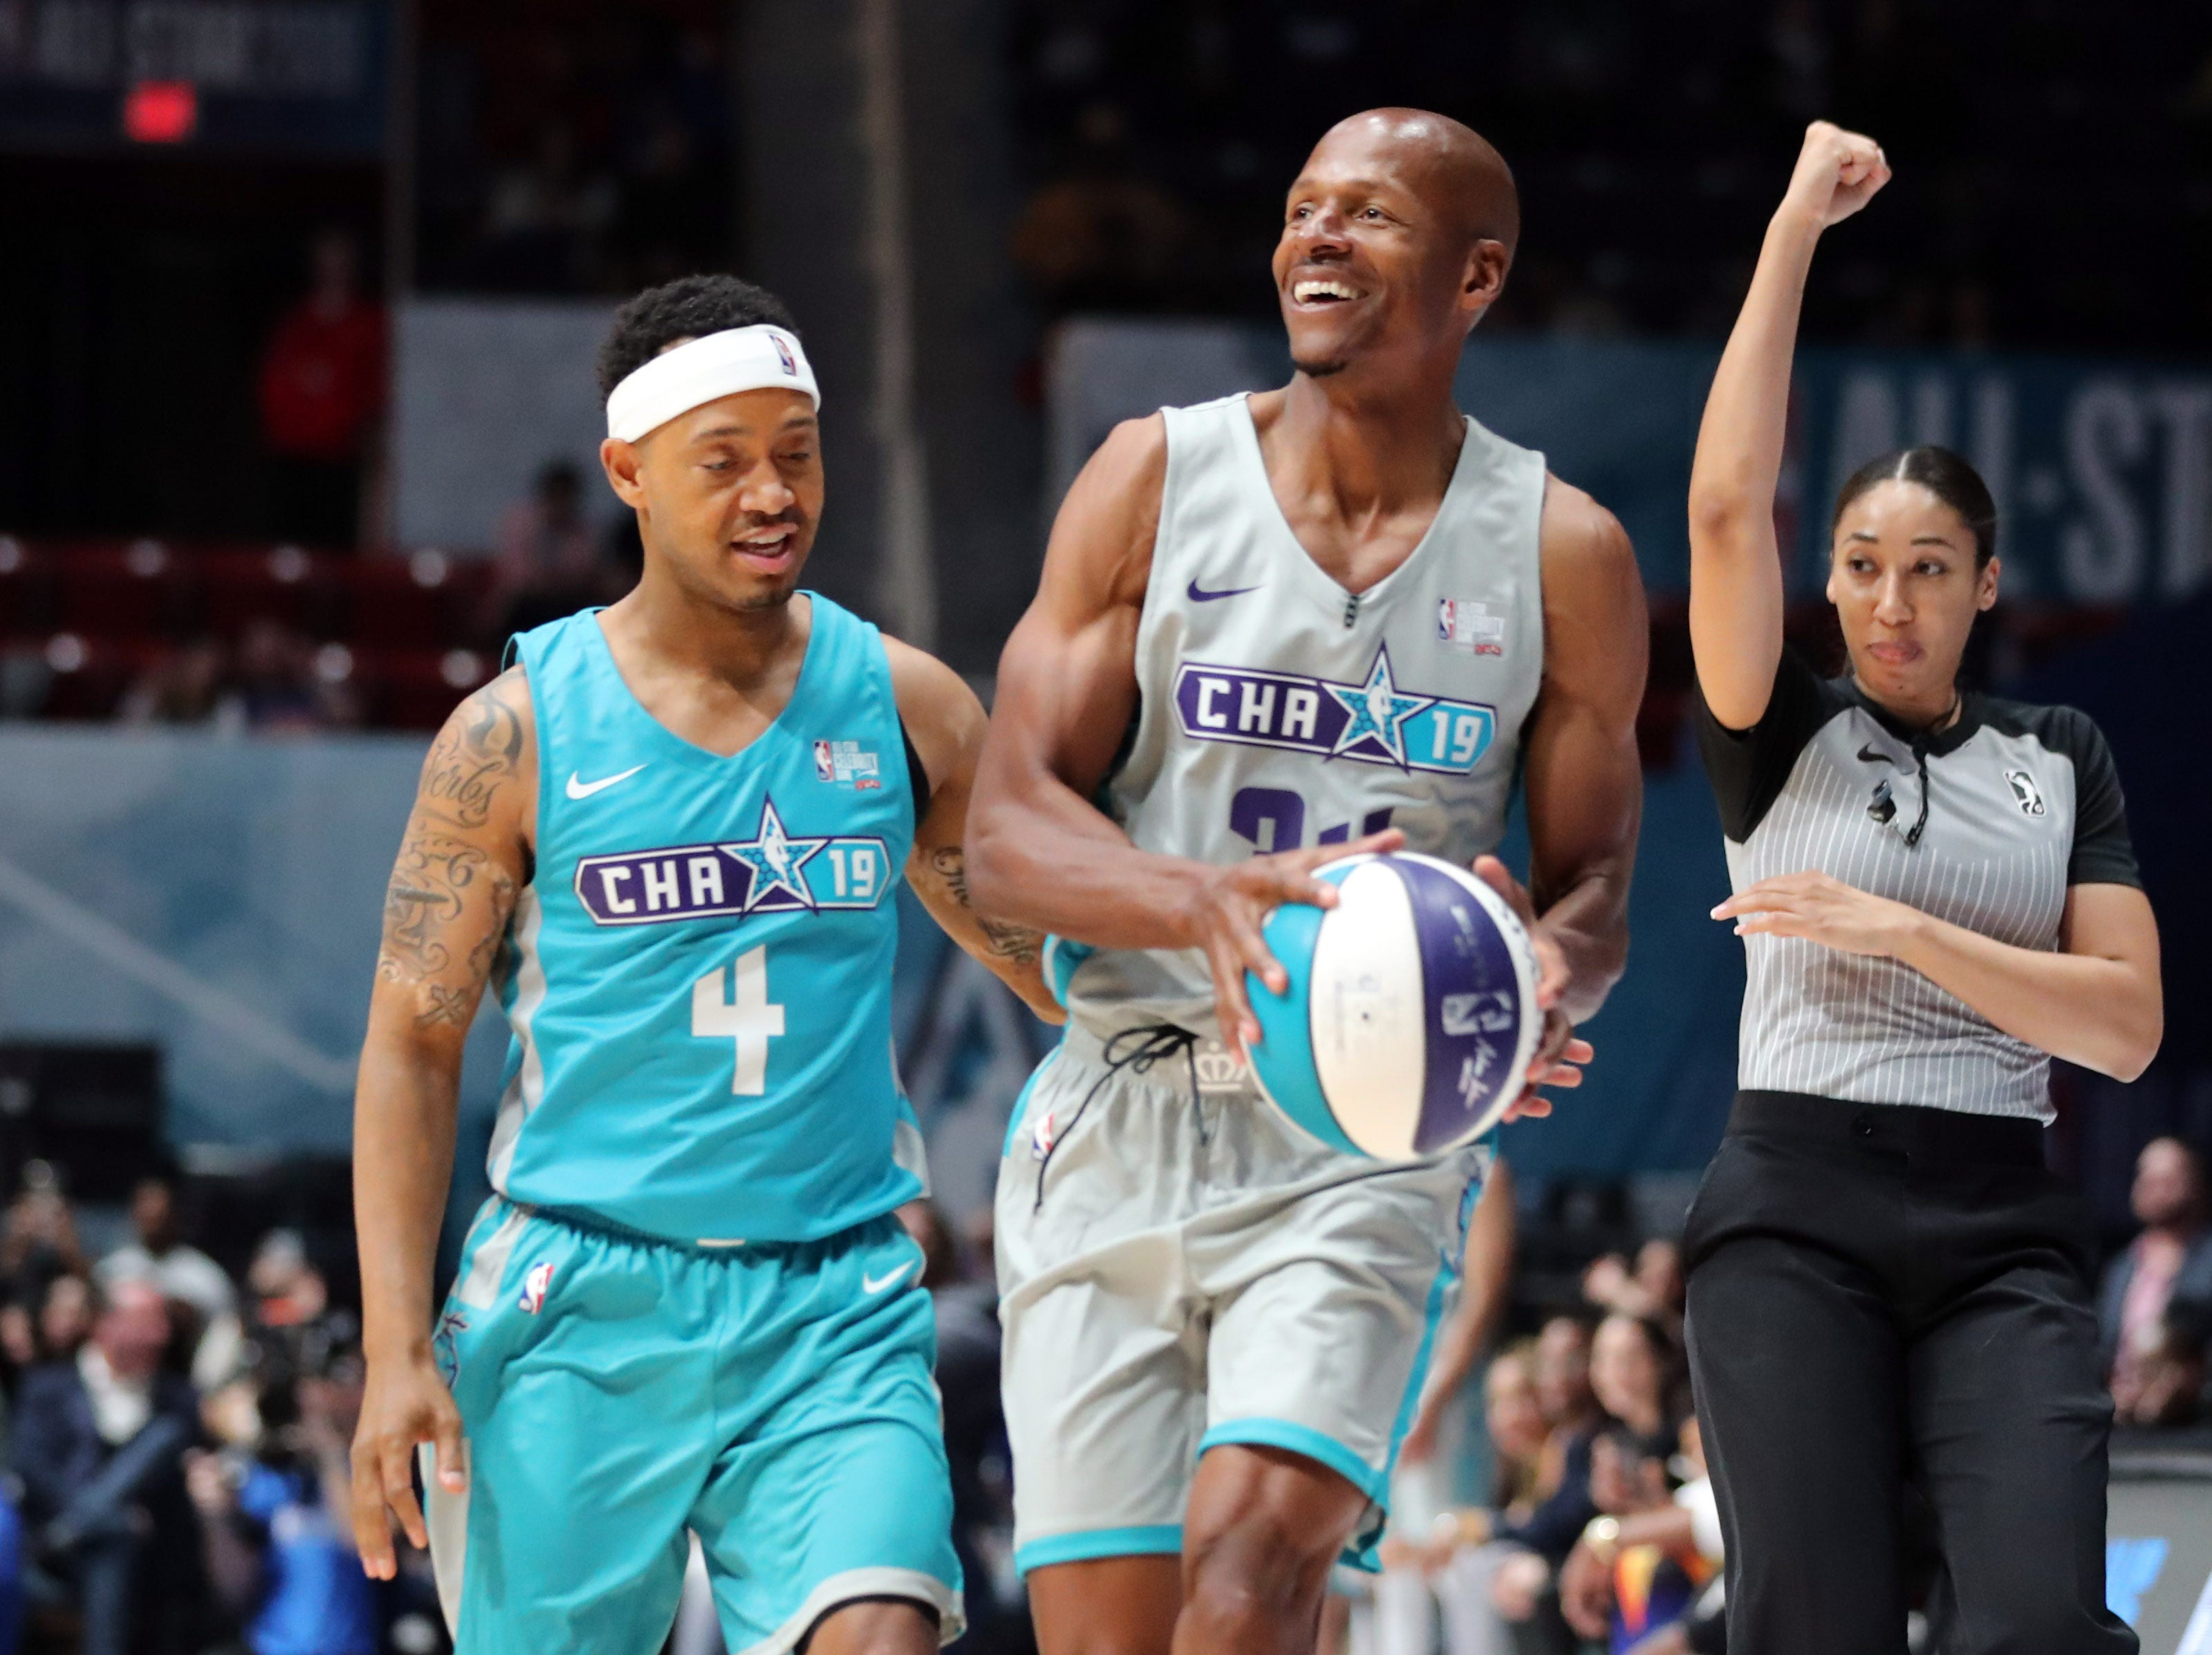 Ray Allen is fouled by Terrence J during the Celebrity Game.